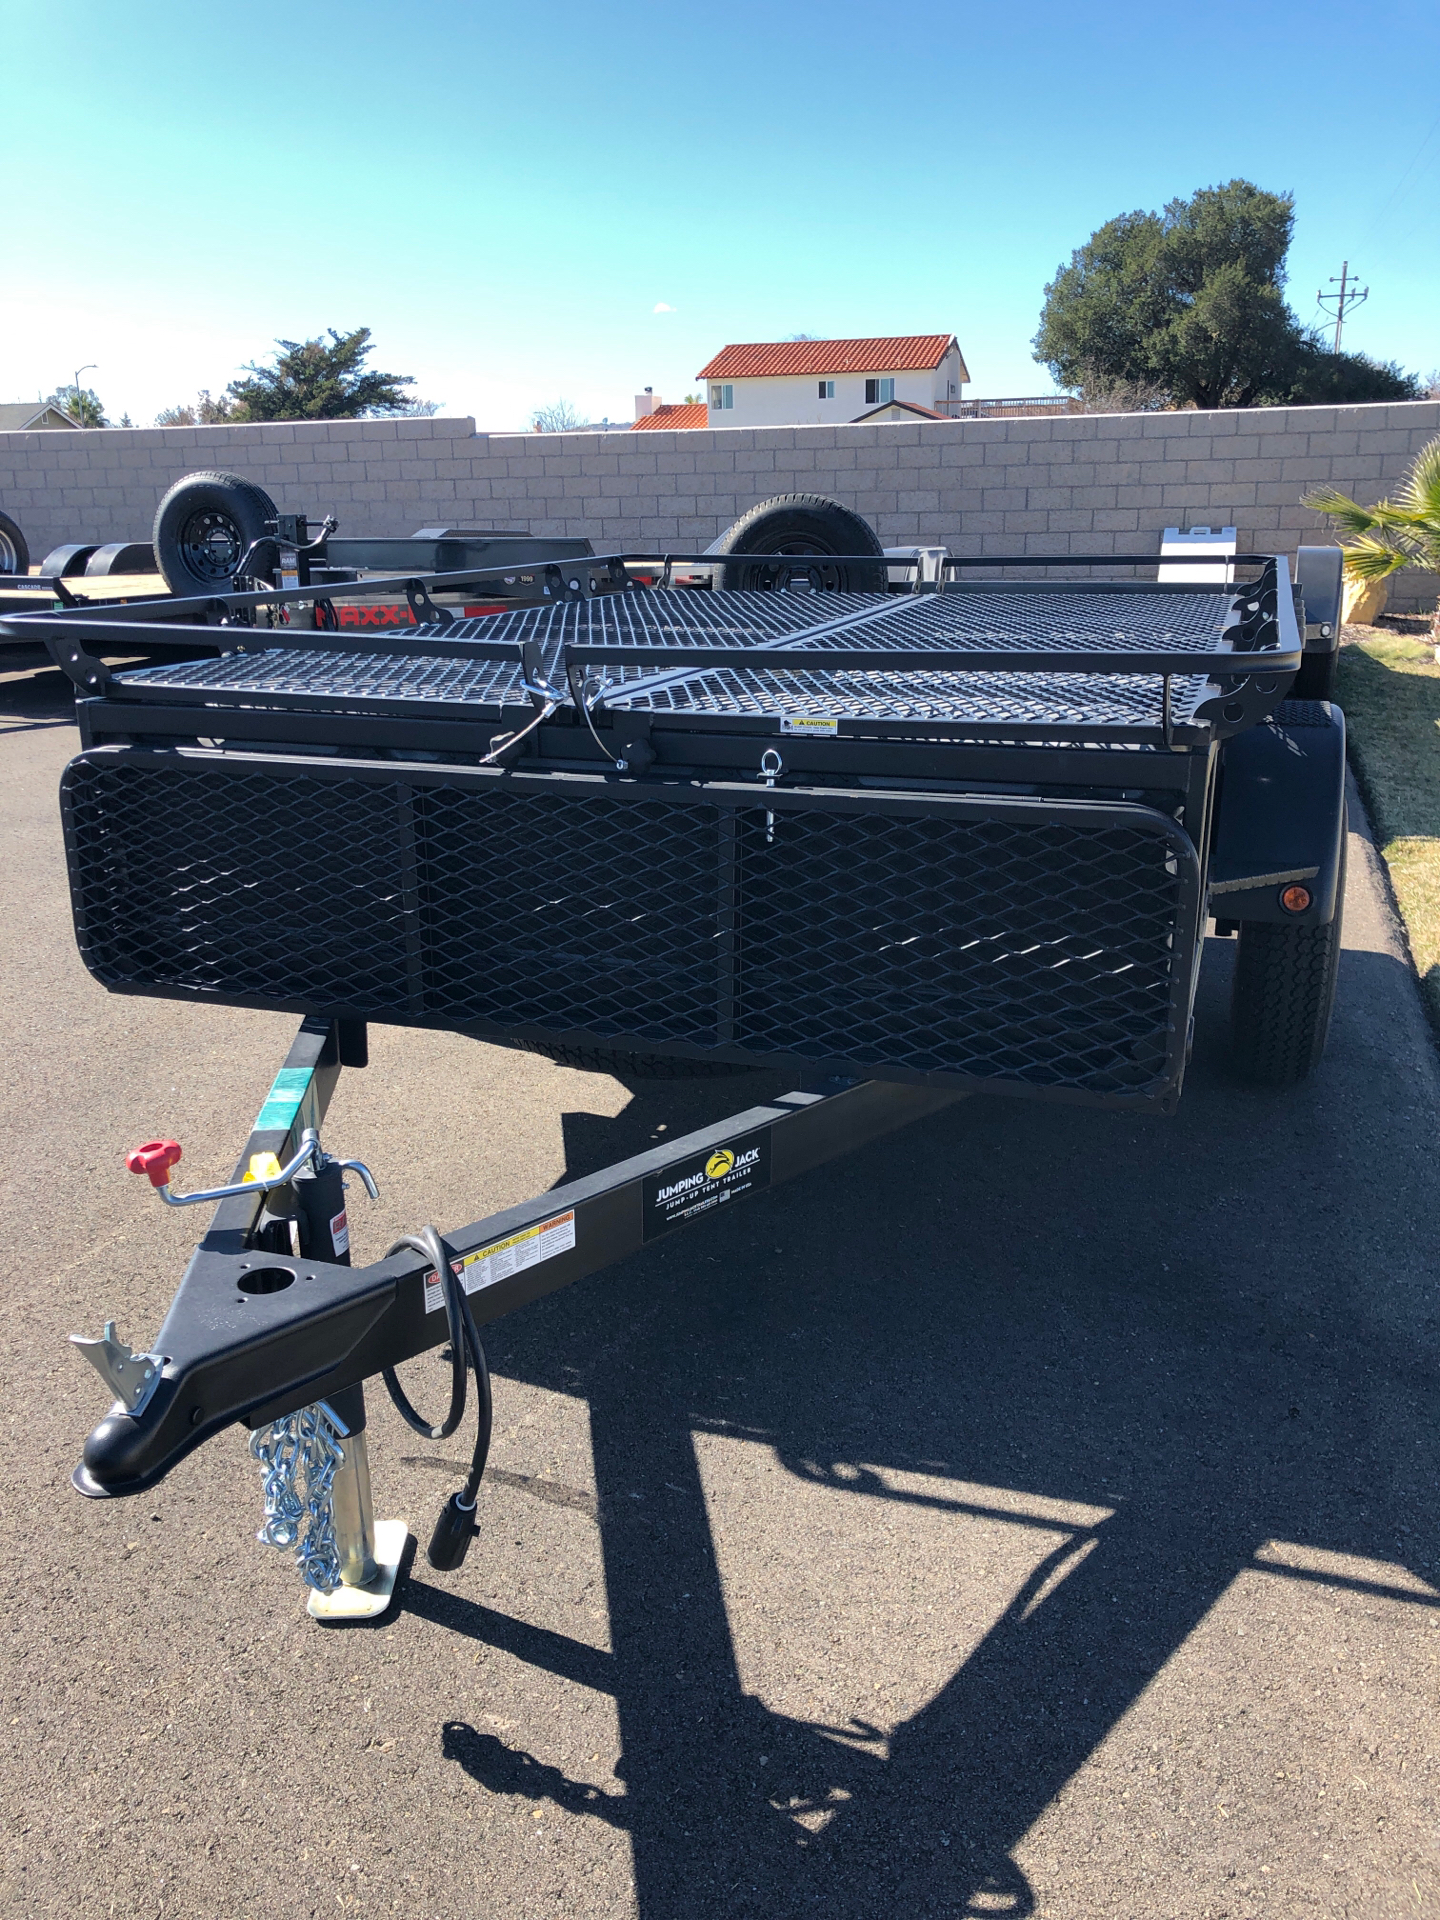 2021 JUMPING JACK TRAILERS  6' X 8' UTILITY W/ SPARE in Paso Robles, California - Photo 1